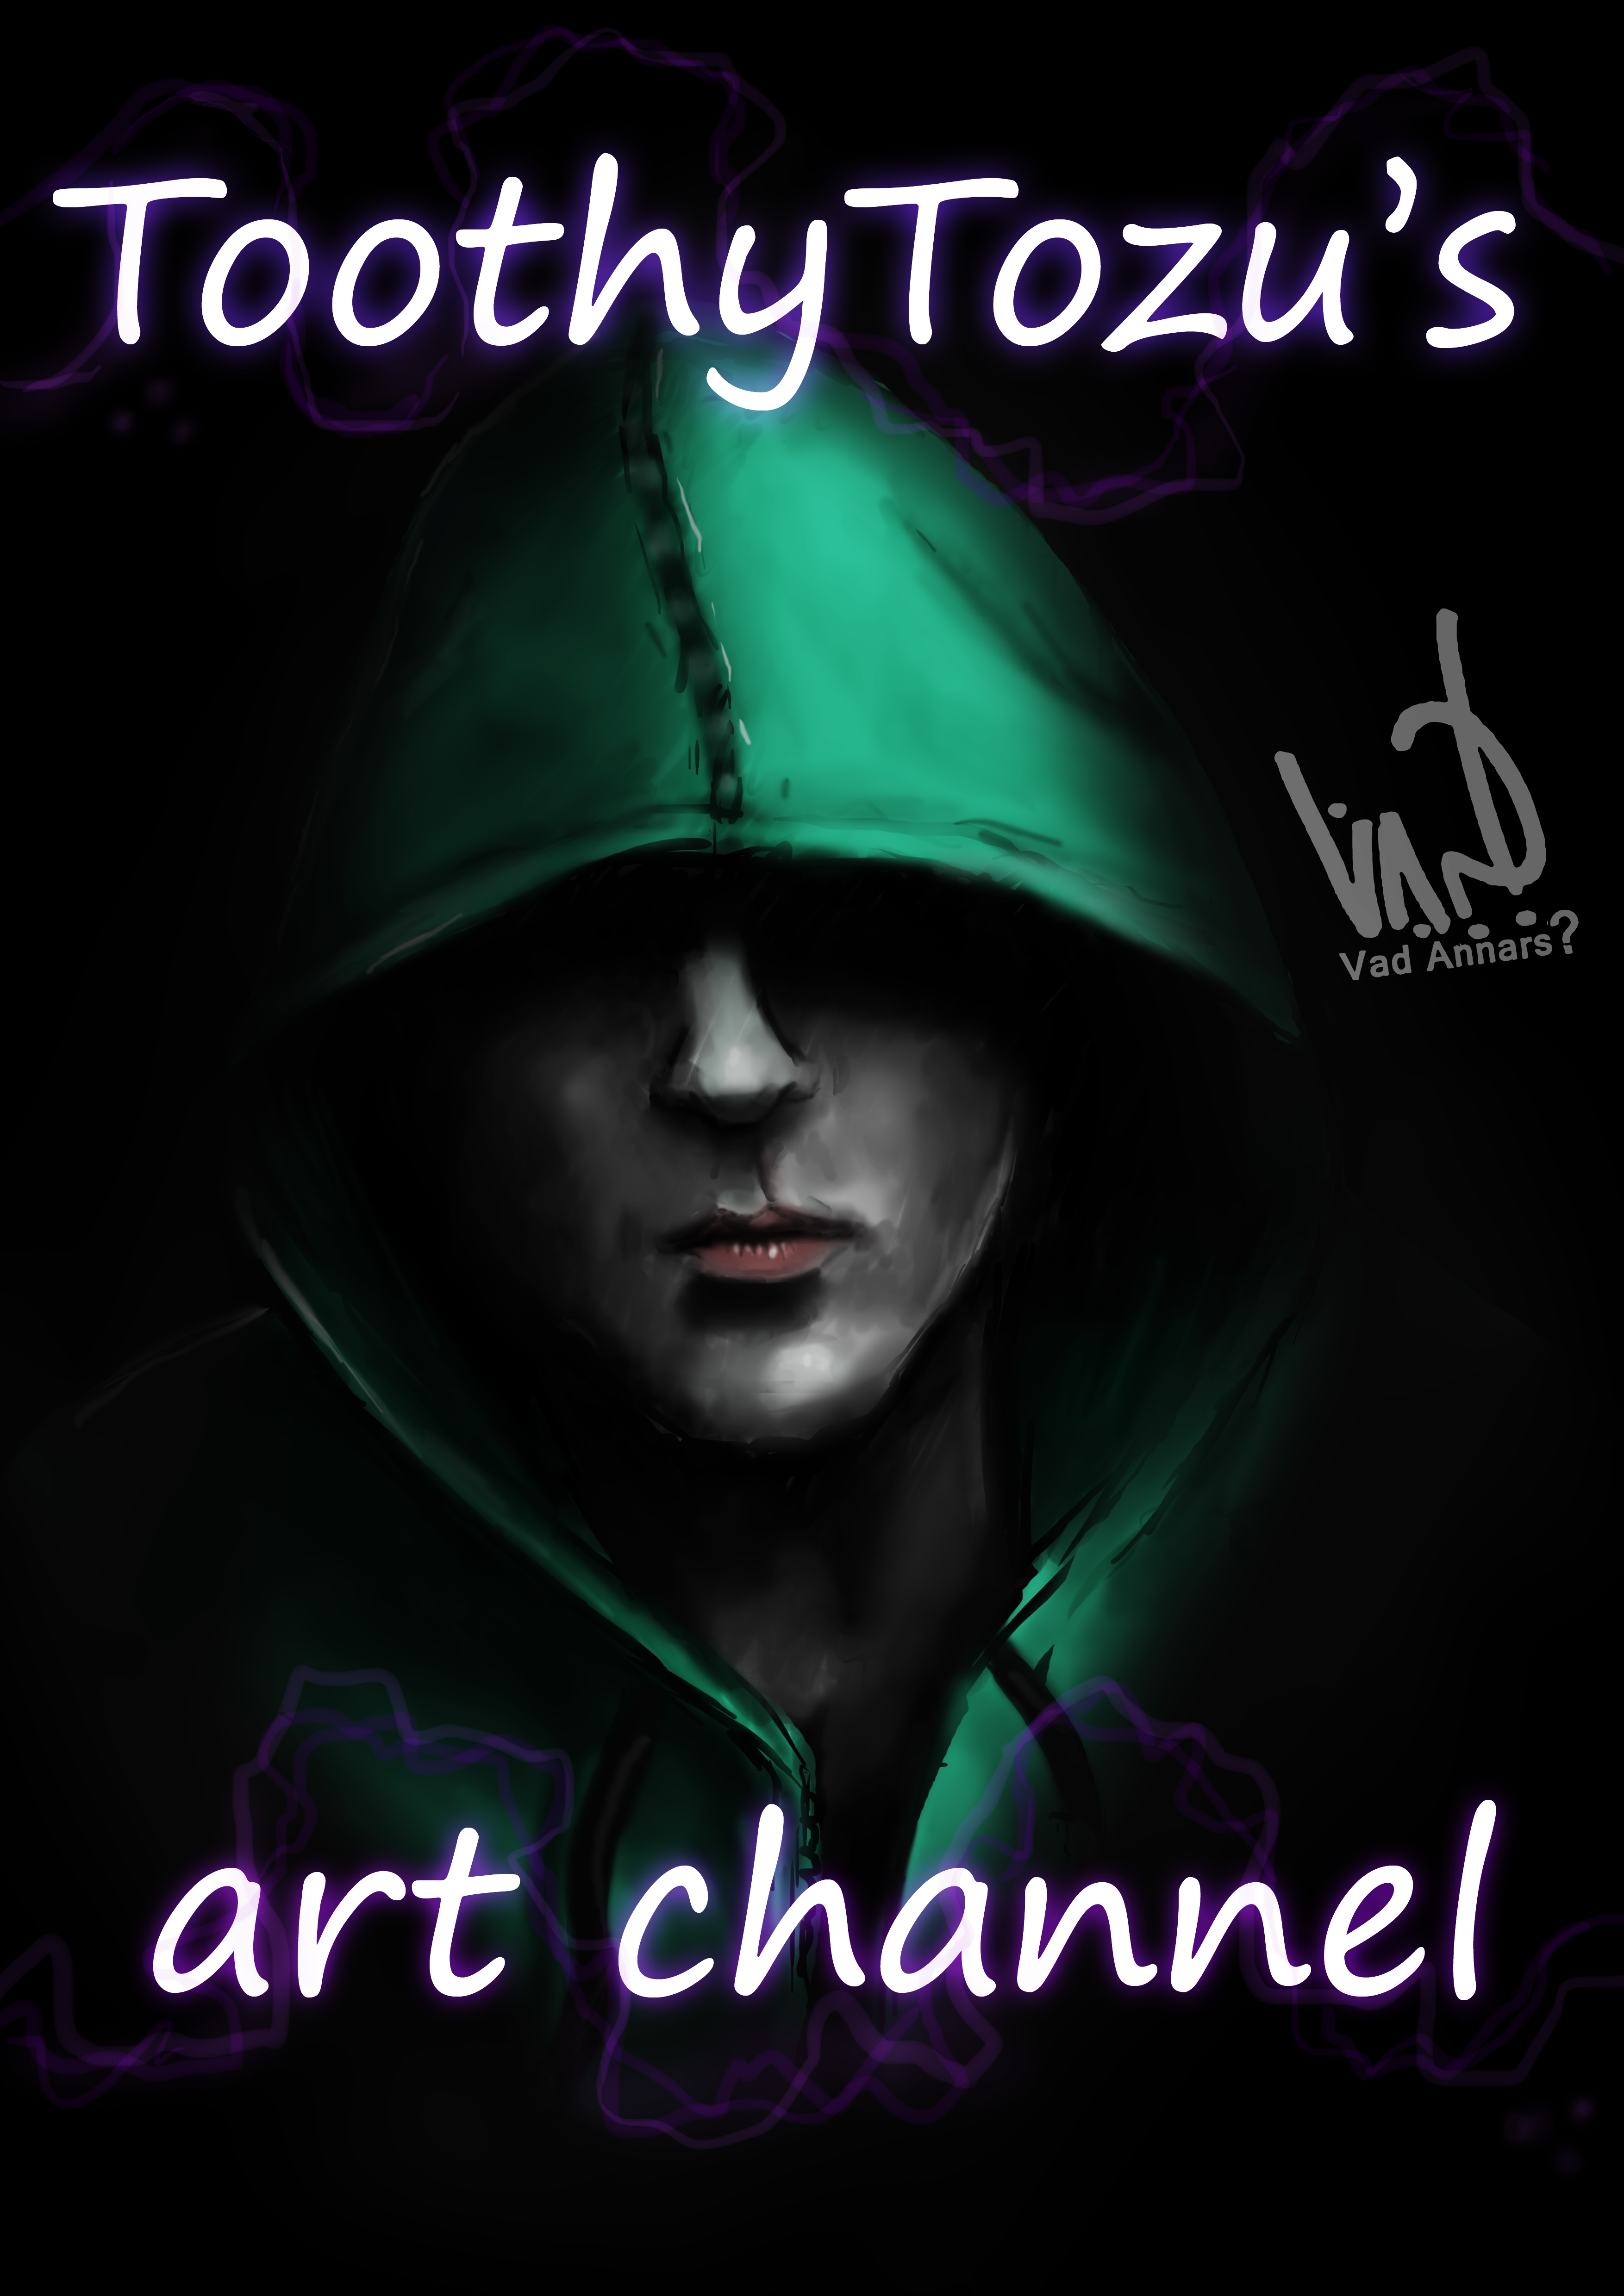 Art channel illustration